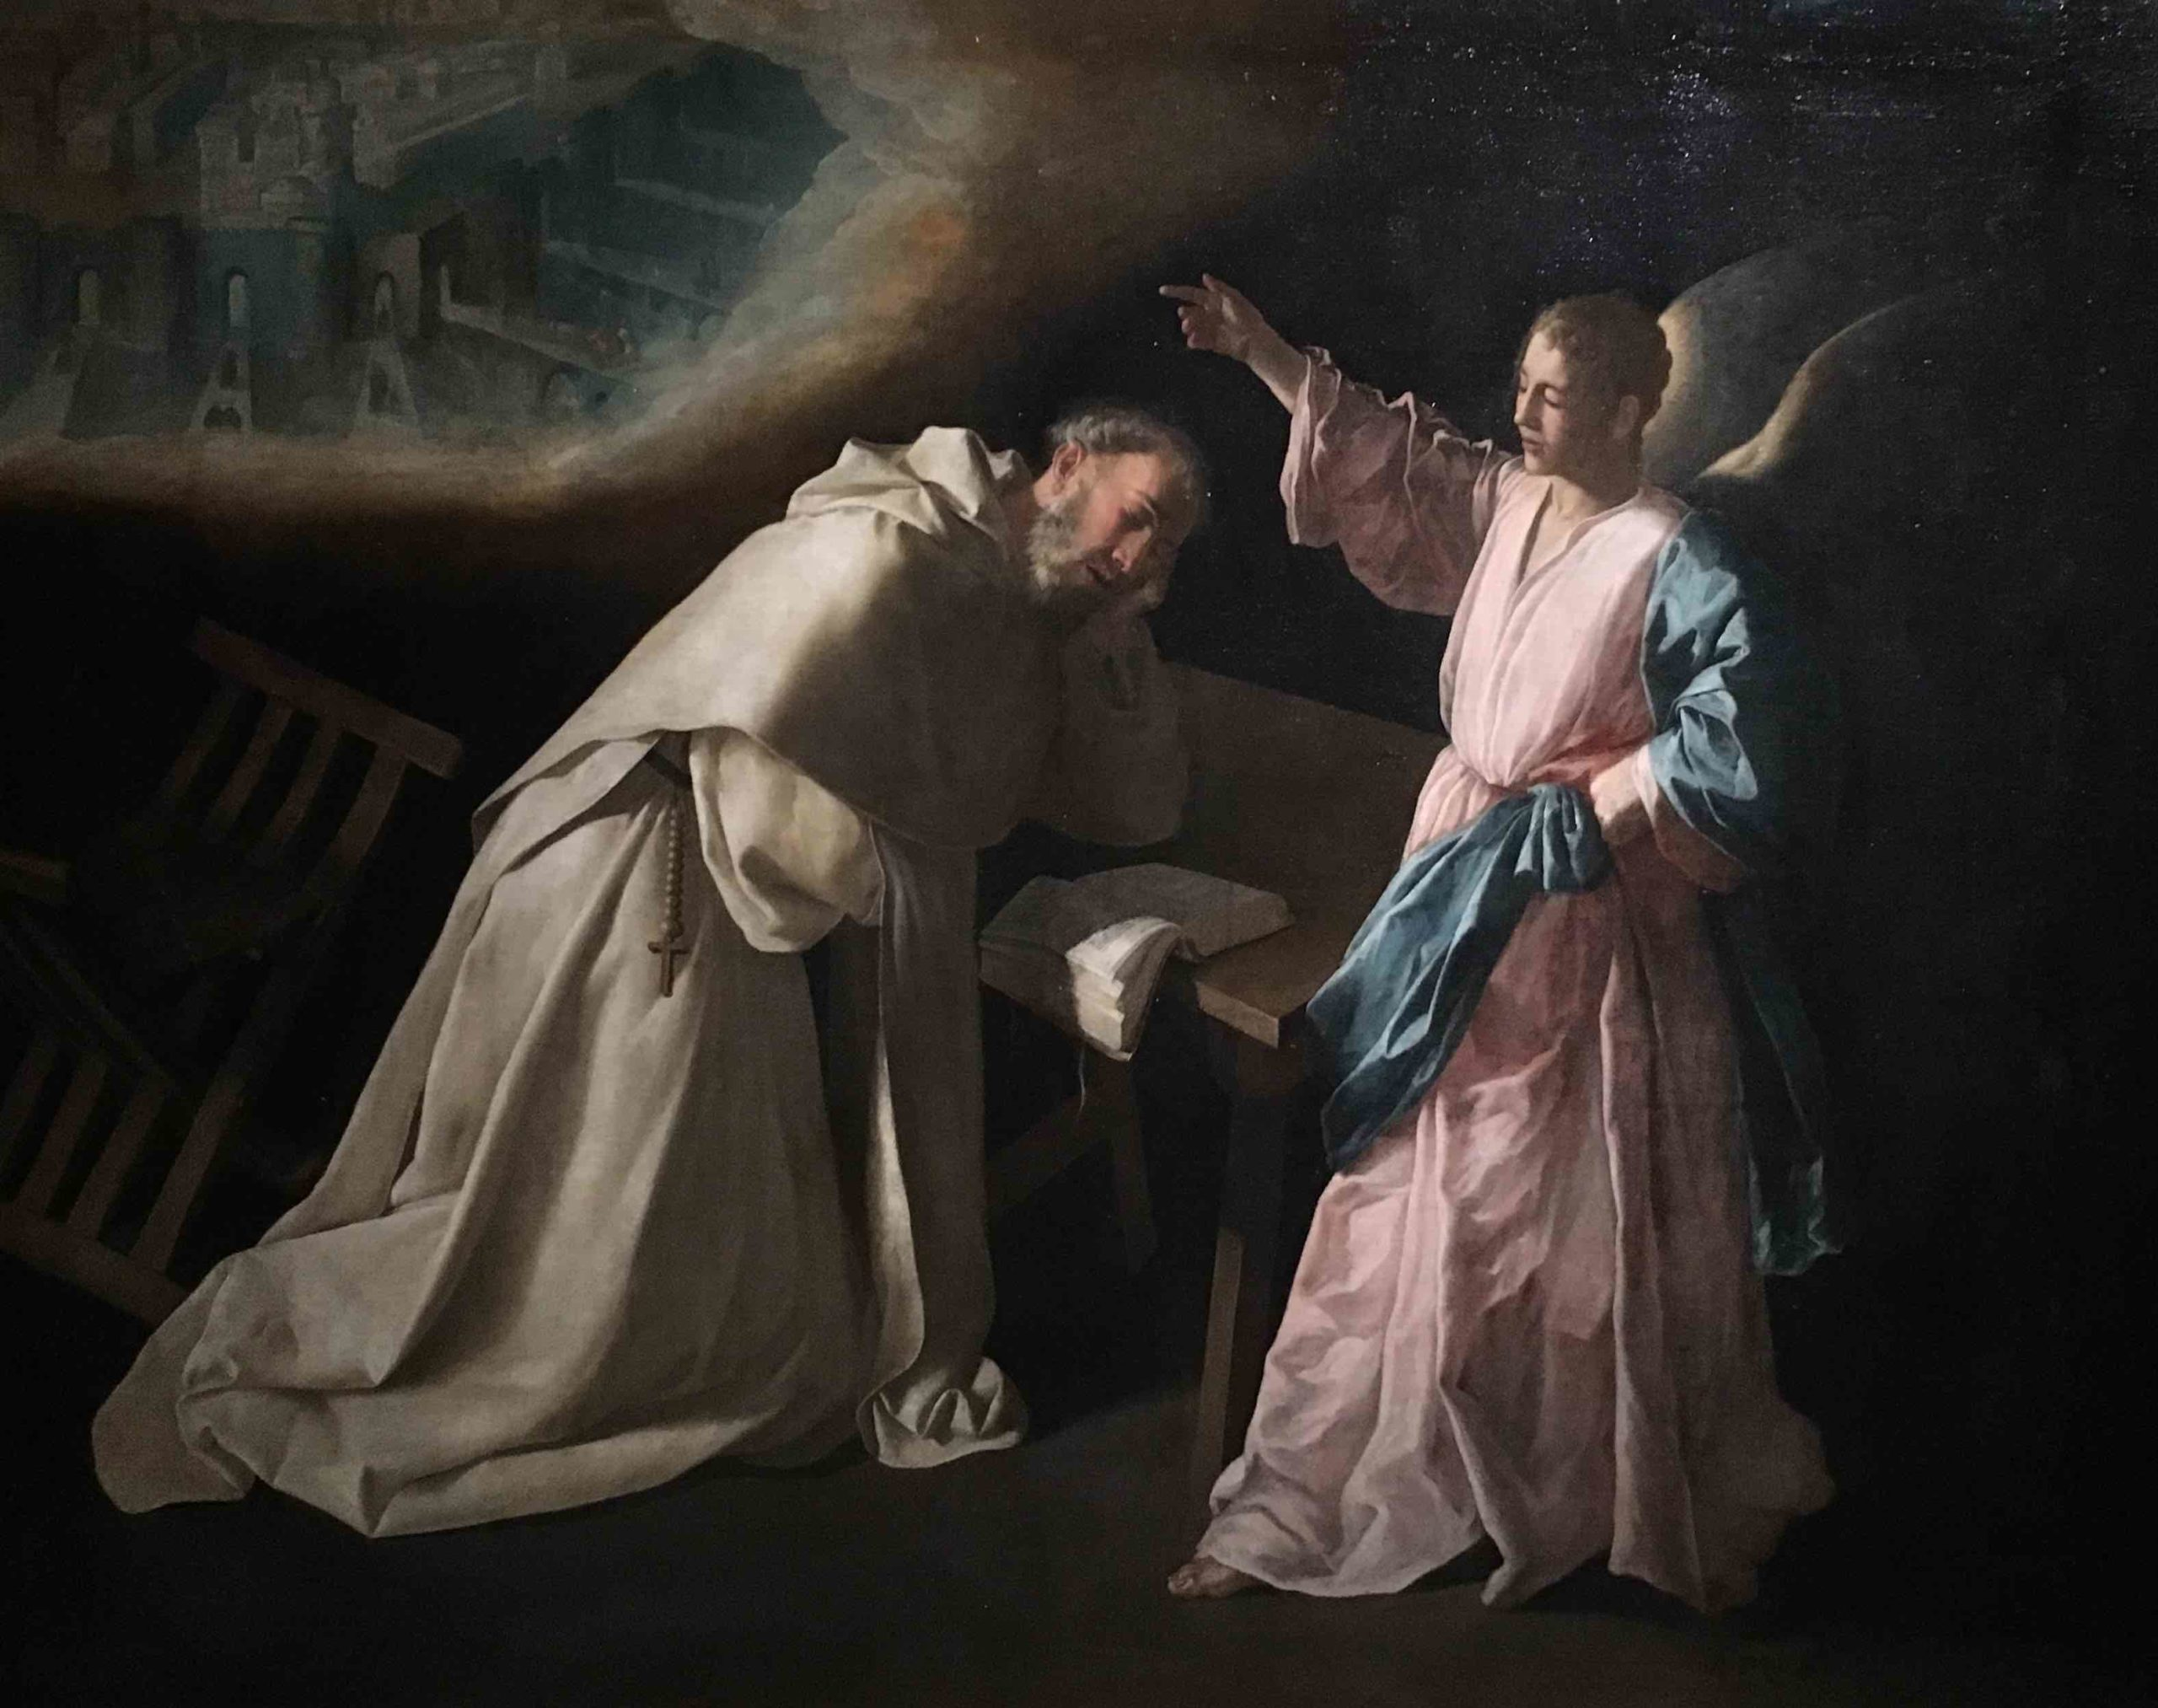 Francisco de Zurbarán, The Vision of Saint Peter Nolasco, 1629.